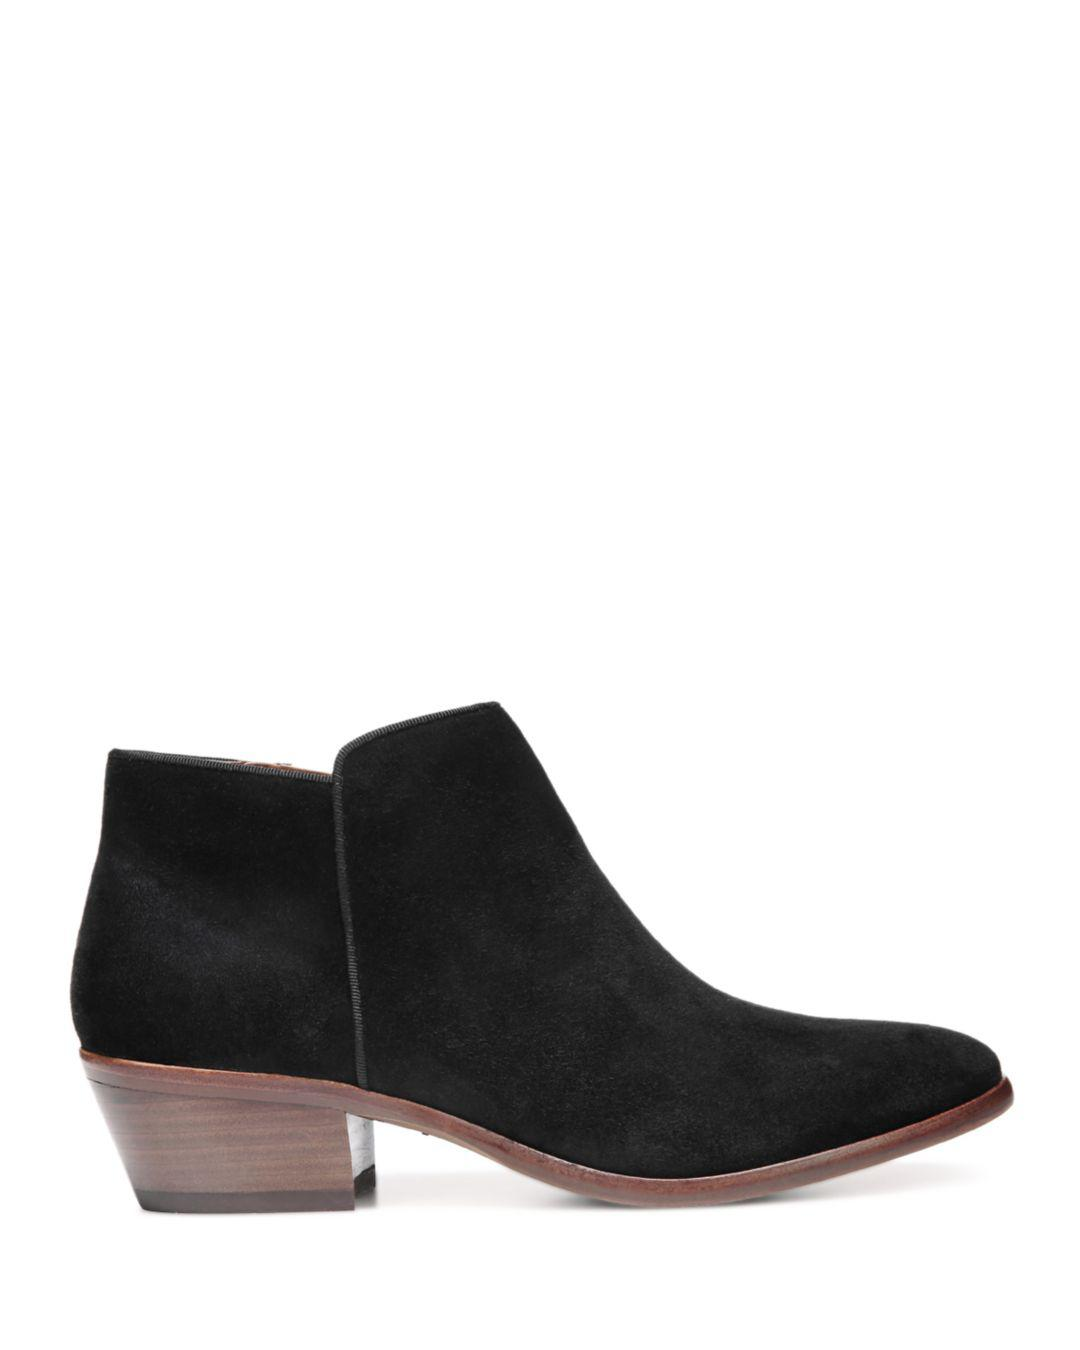 36d20df1eedf2 Lyst - Sam Edelman Petty Ankle Boots in Black